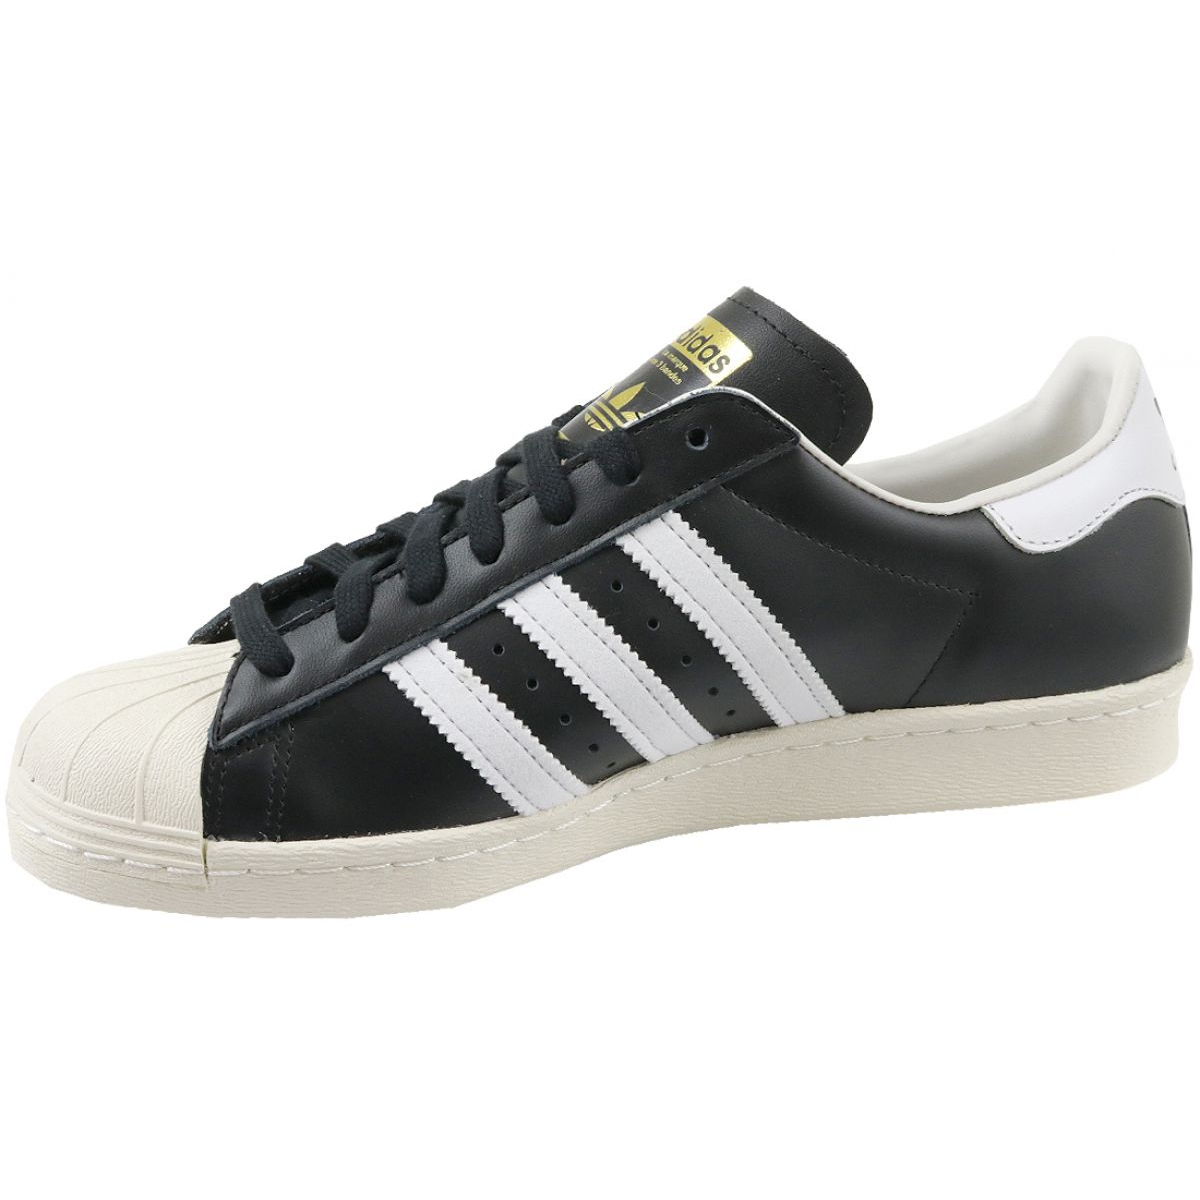 nouvelle collection db9bb 2868f Noir Chaussures Adidas Superstar 80S M G61069